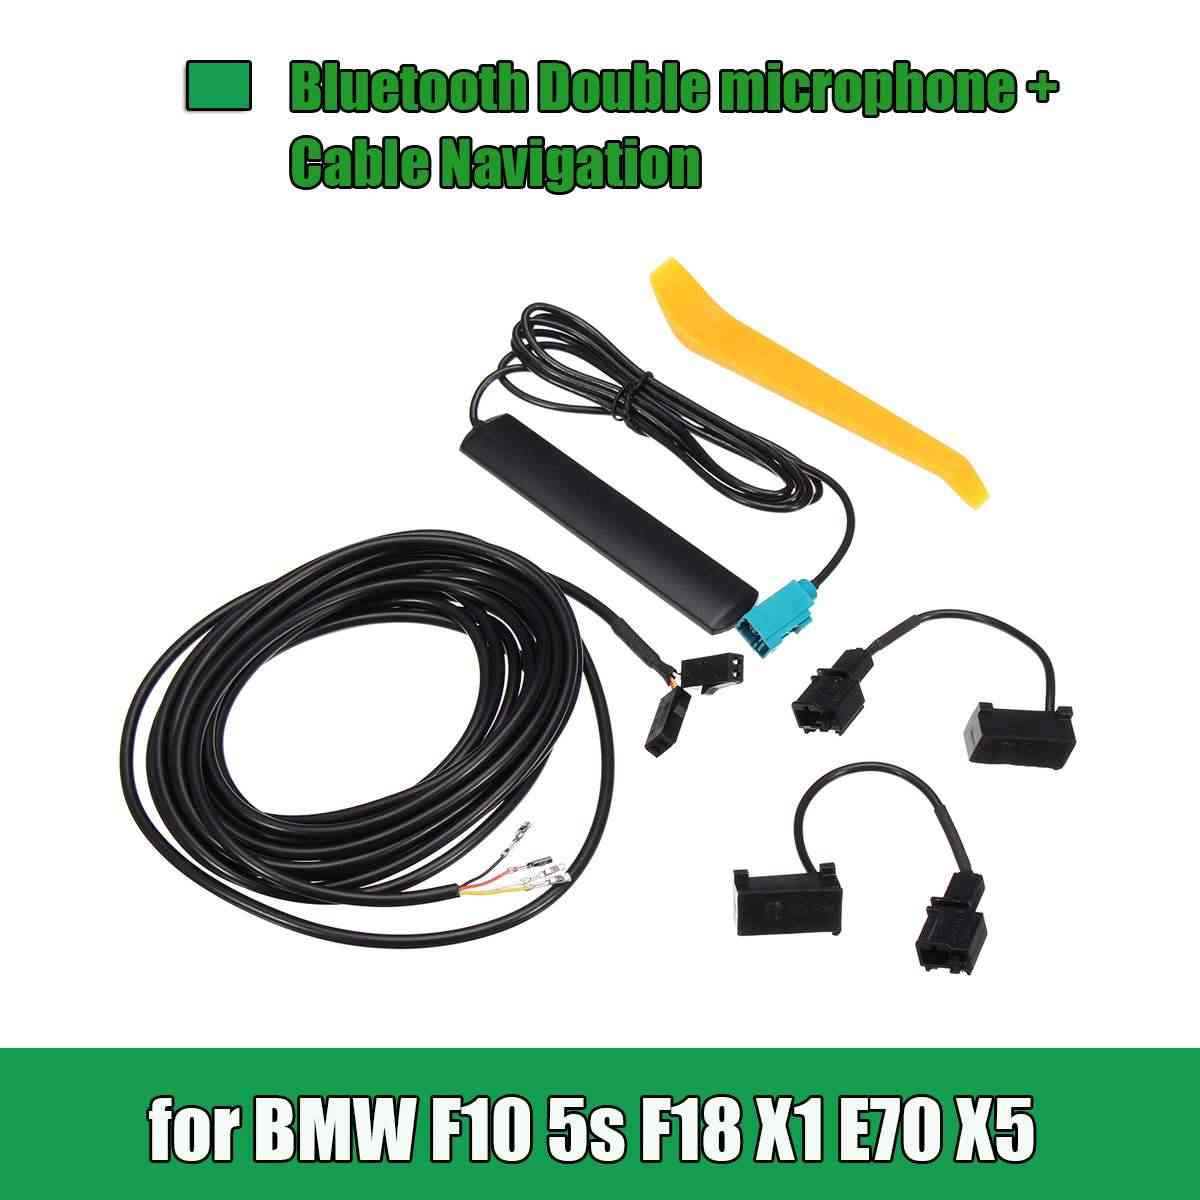 12/13/25/26 Pin bluetooth Double Microphone Car GPS Navigation Cable DIY  Set For BMW F10 5S F18 X1 E70 X5